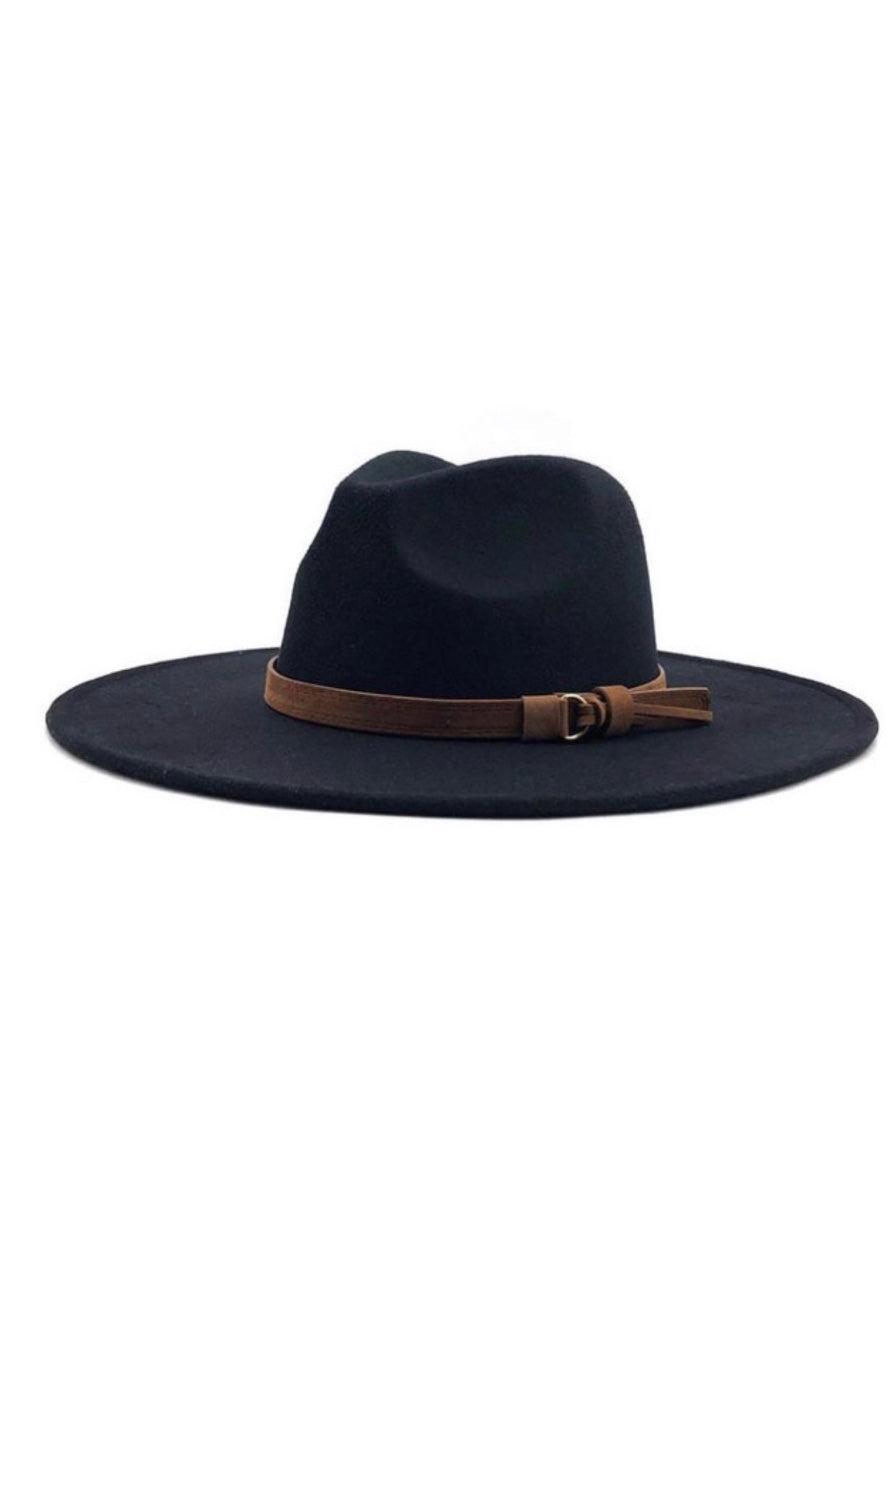 Calhan Black Wide Brim Dandy Panama Hat